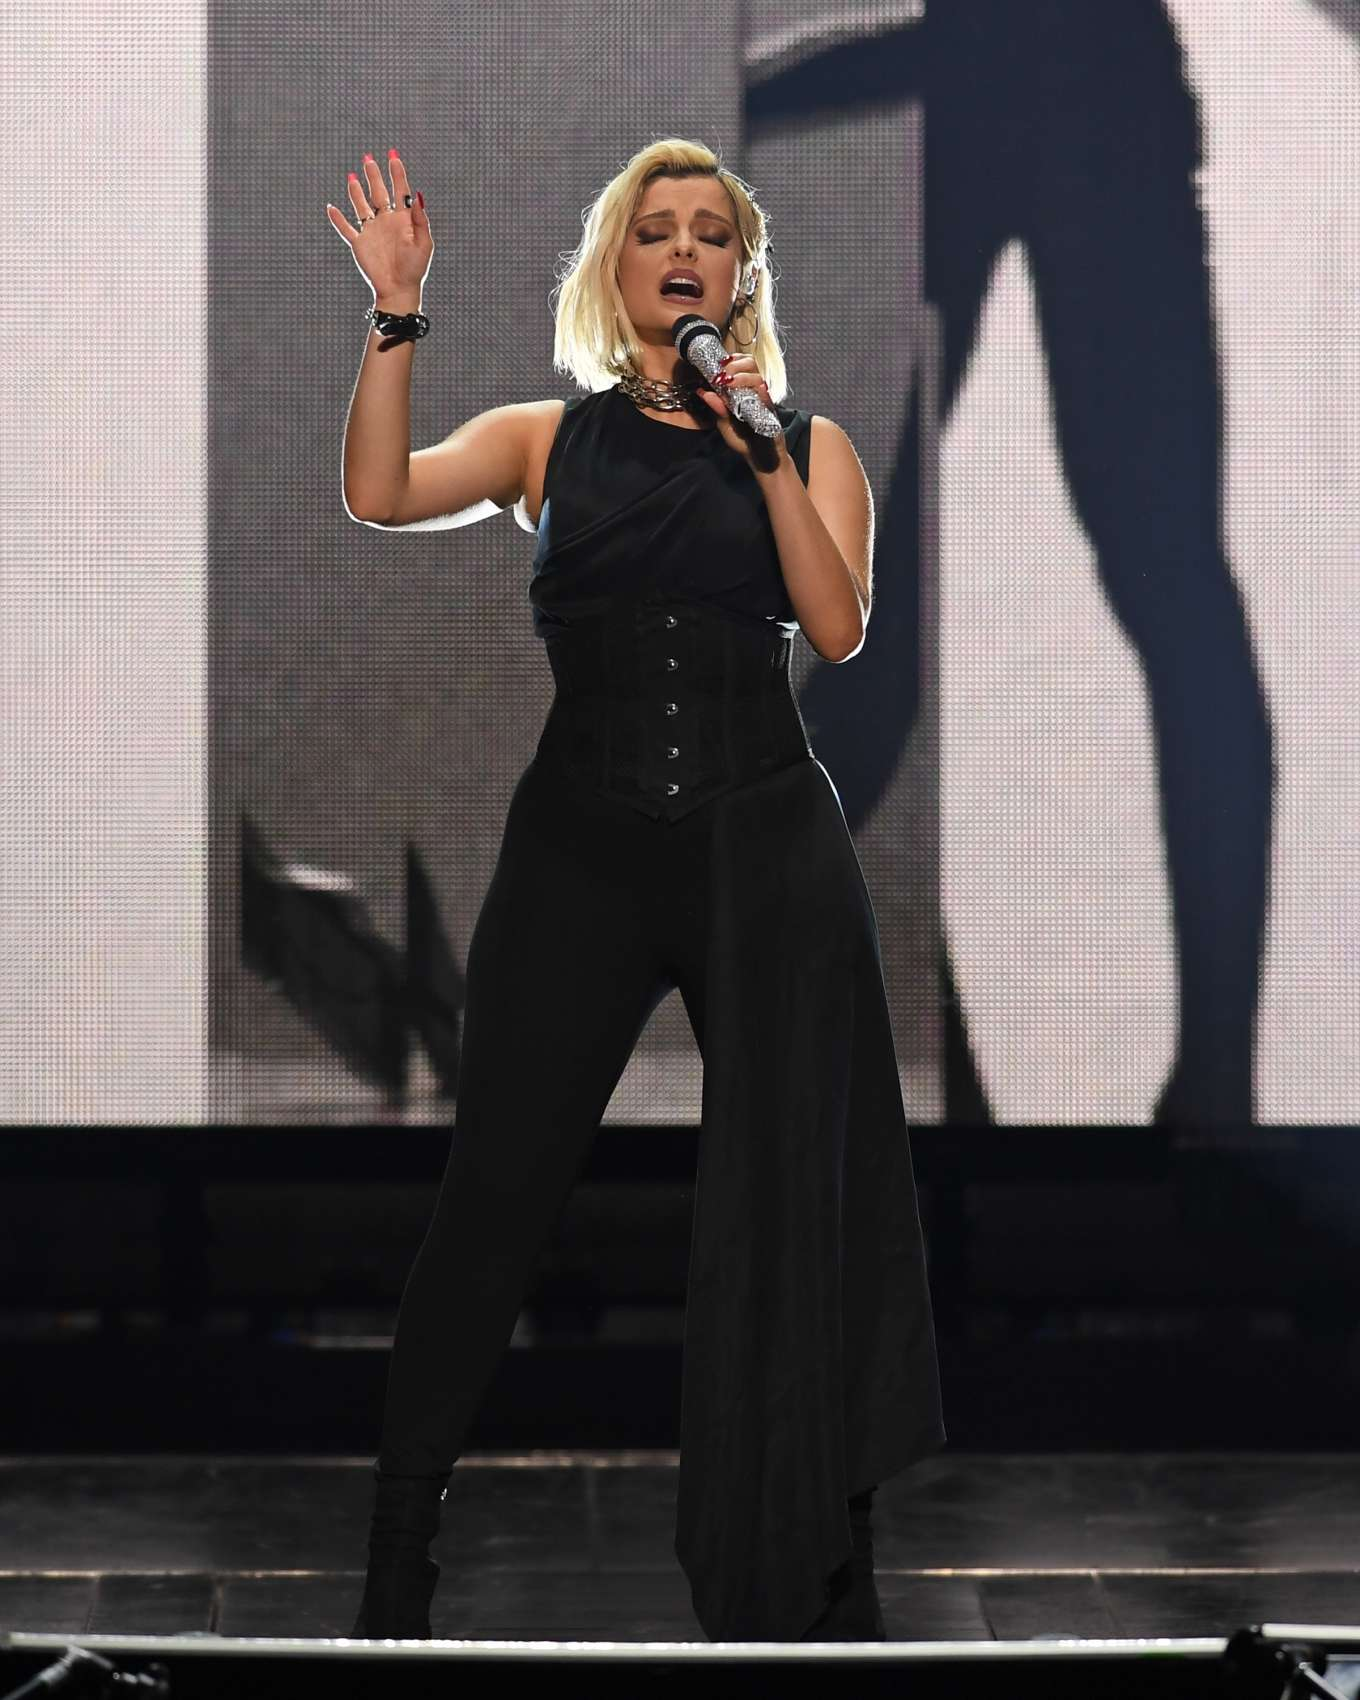 Bebe Rexha - Performs at BBT Center in Sunrise FL